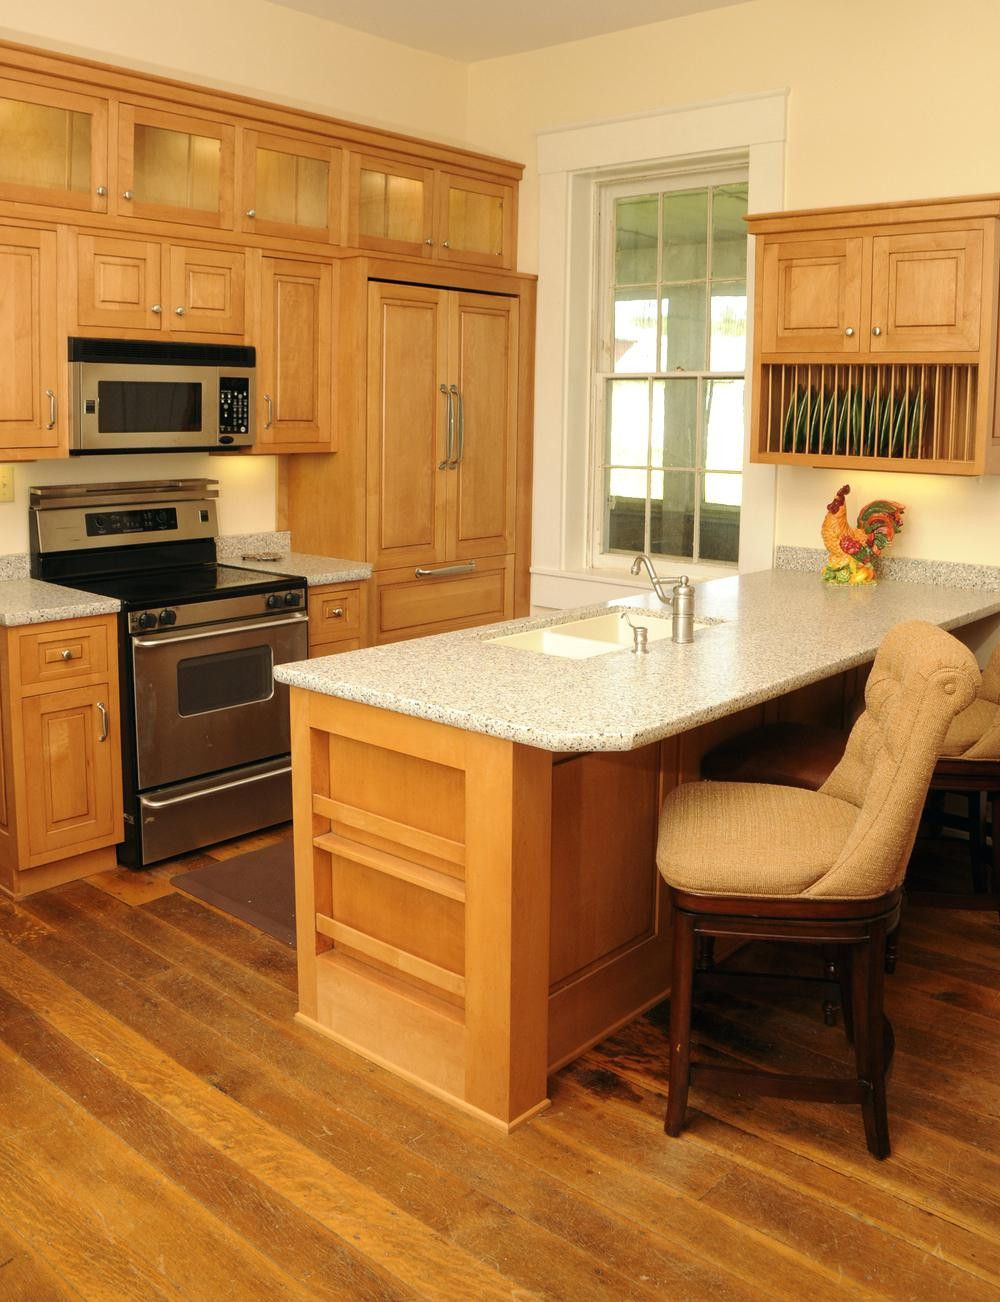 5+ Cabinet Makers Near Me - Kitchen Cabinets Countertops Ideas